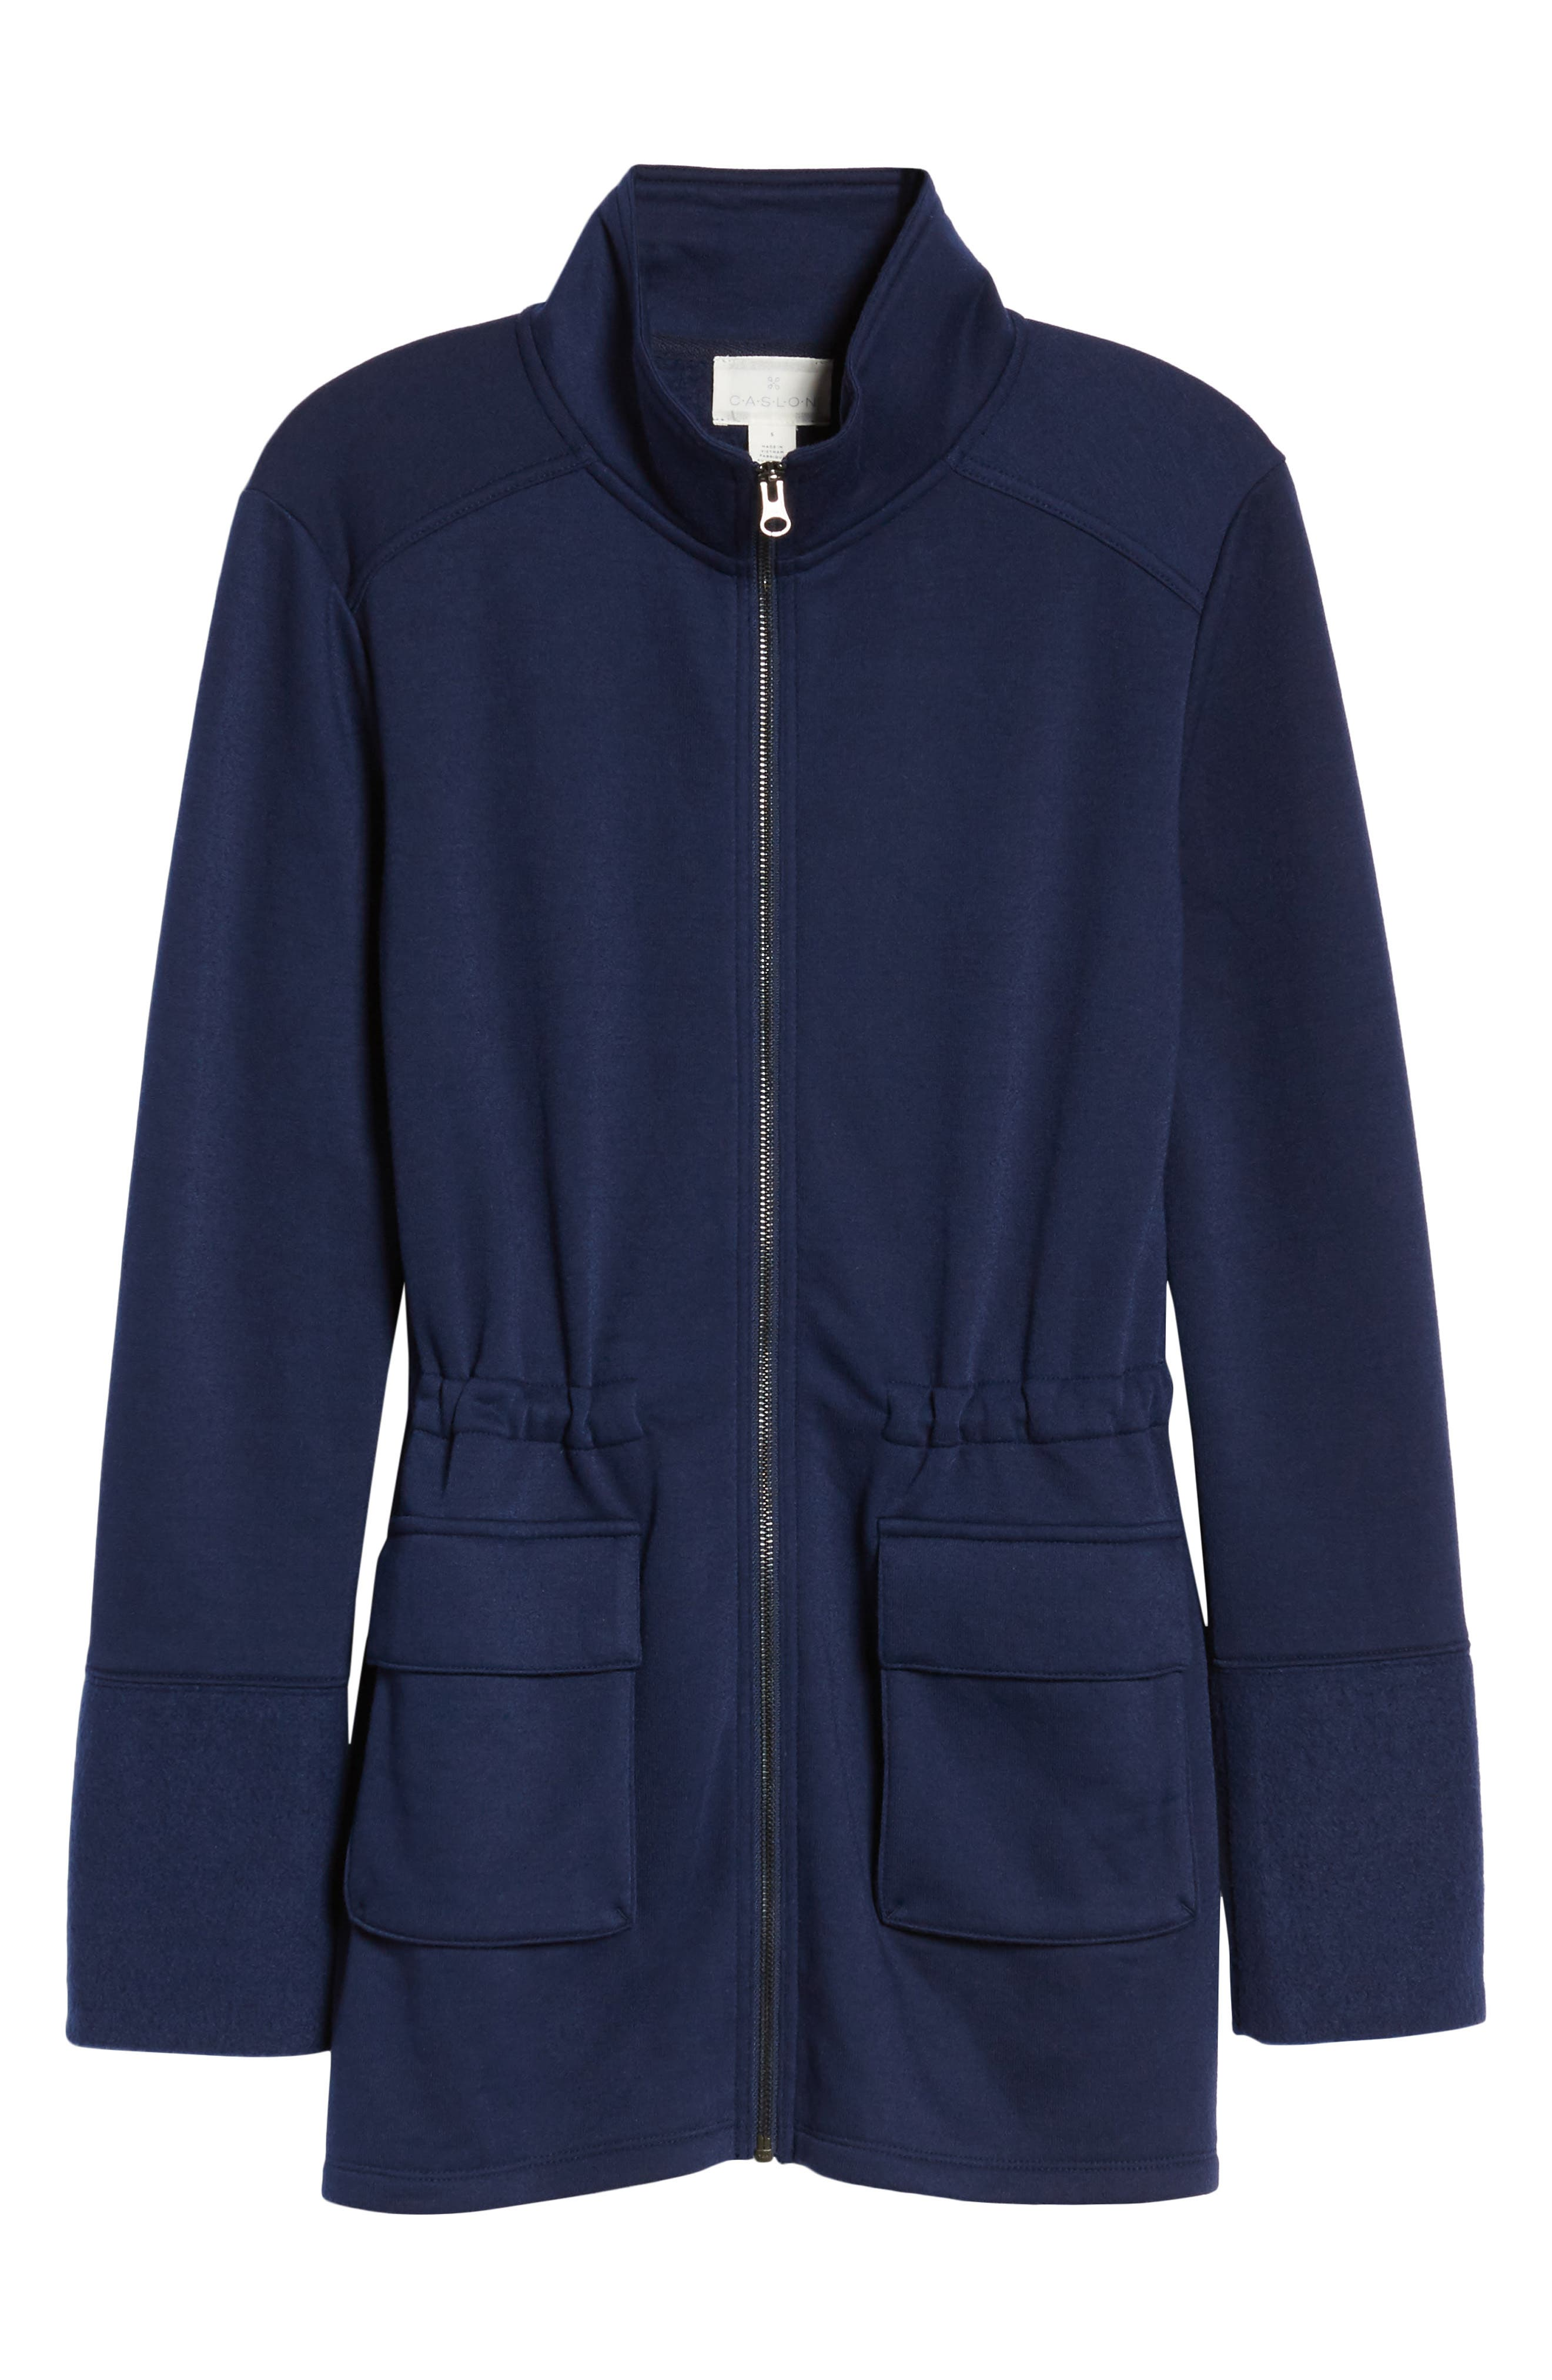 Gathered Waist Front Zip Jacket,                             Alternate thumbnail 6, color,                             Navy Peacoat